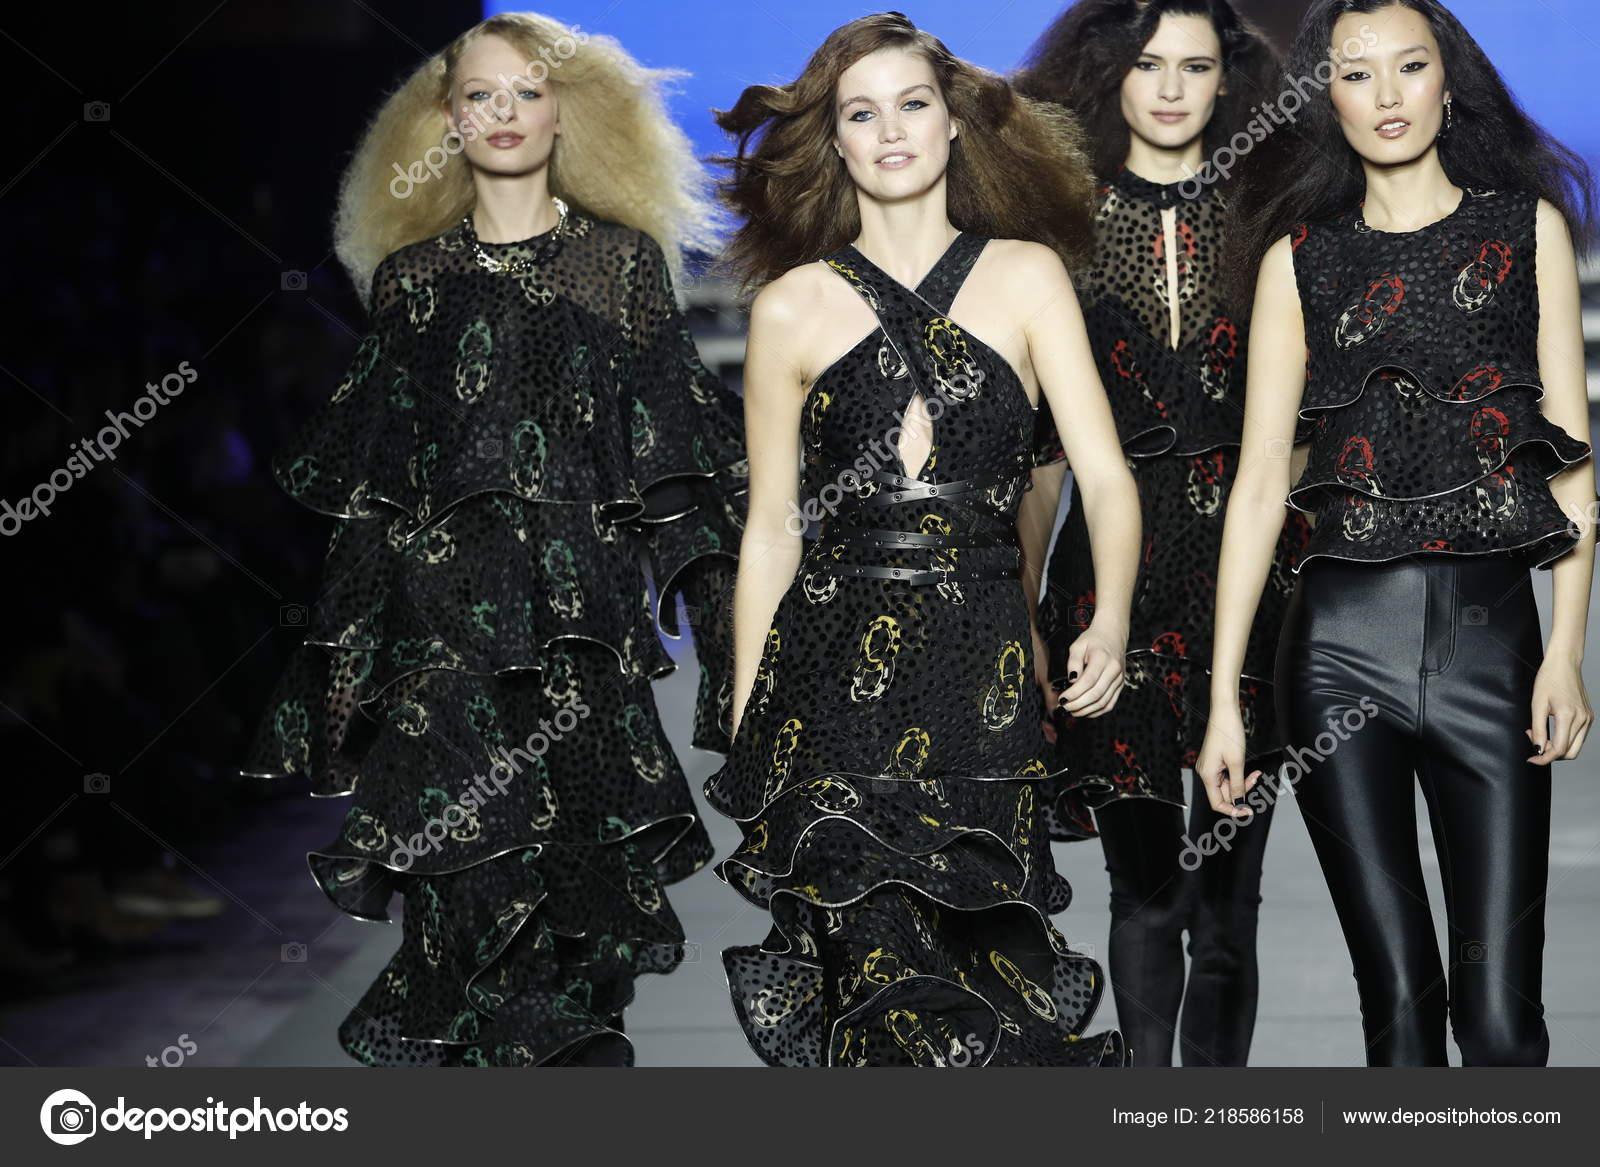 ca1940c389f PARIS, FRANCE - MARCH 03: Models walk the runway during the Sonia Rykiel  show as part of the Paris Fashion Week Womenswear Fall/Winter 2018/2019 on  March 3, ...